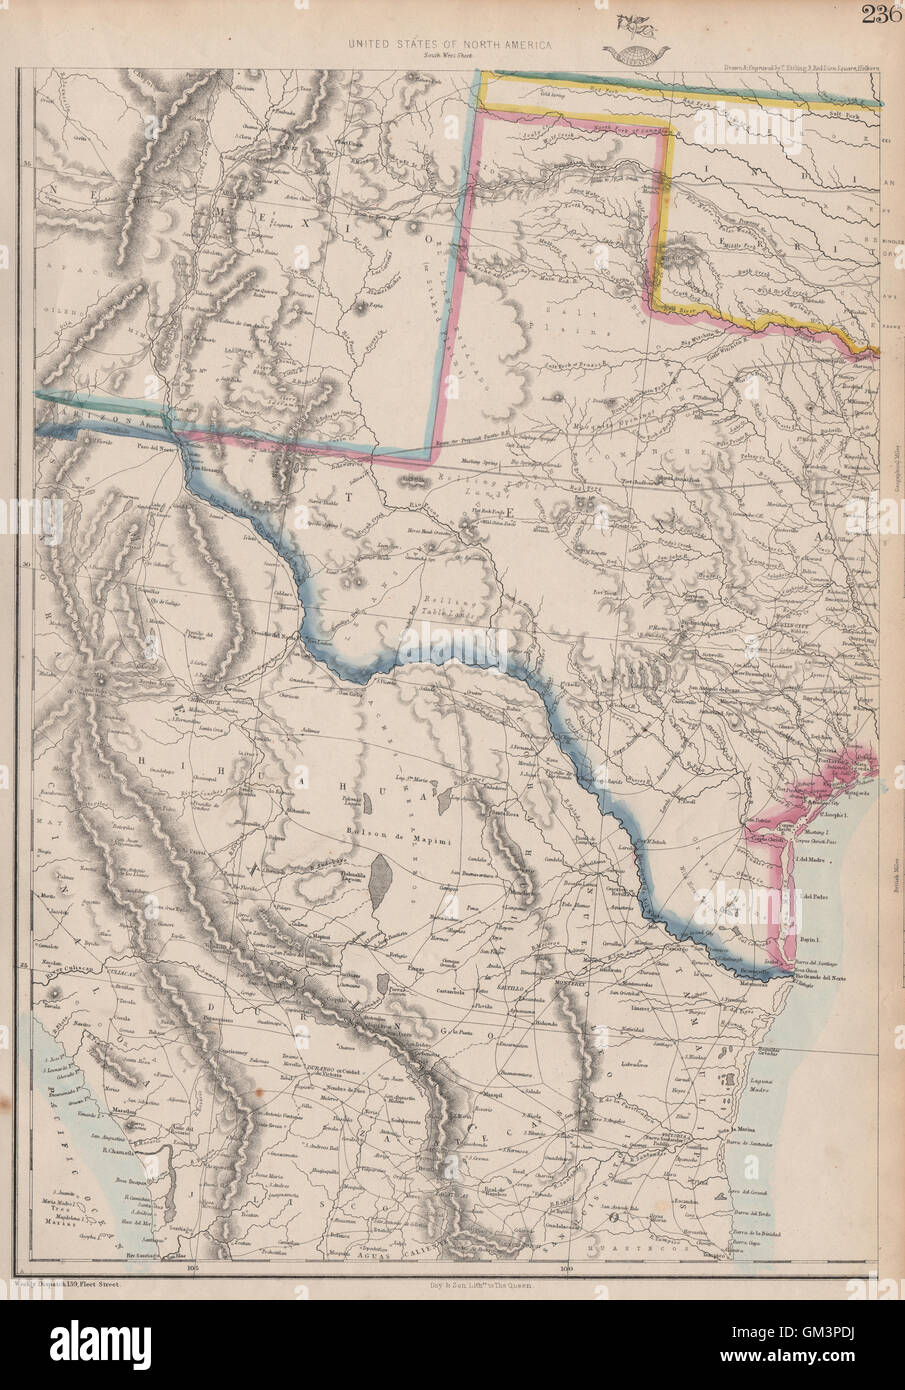 USA SOUTH. Texas New Mexico. Gadsden purchase shown as Arizona.ETTLING, 1863 map - Stock Image